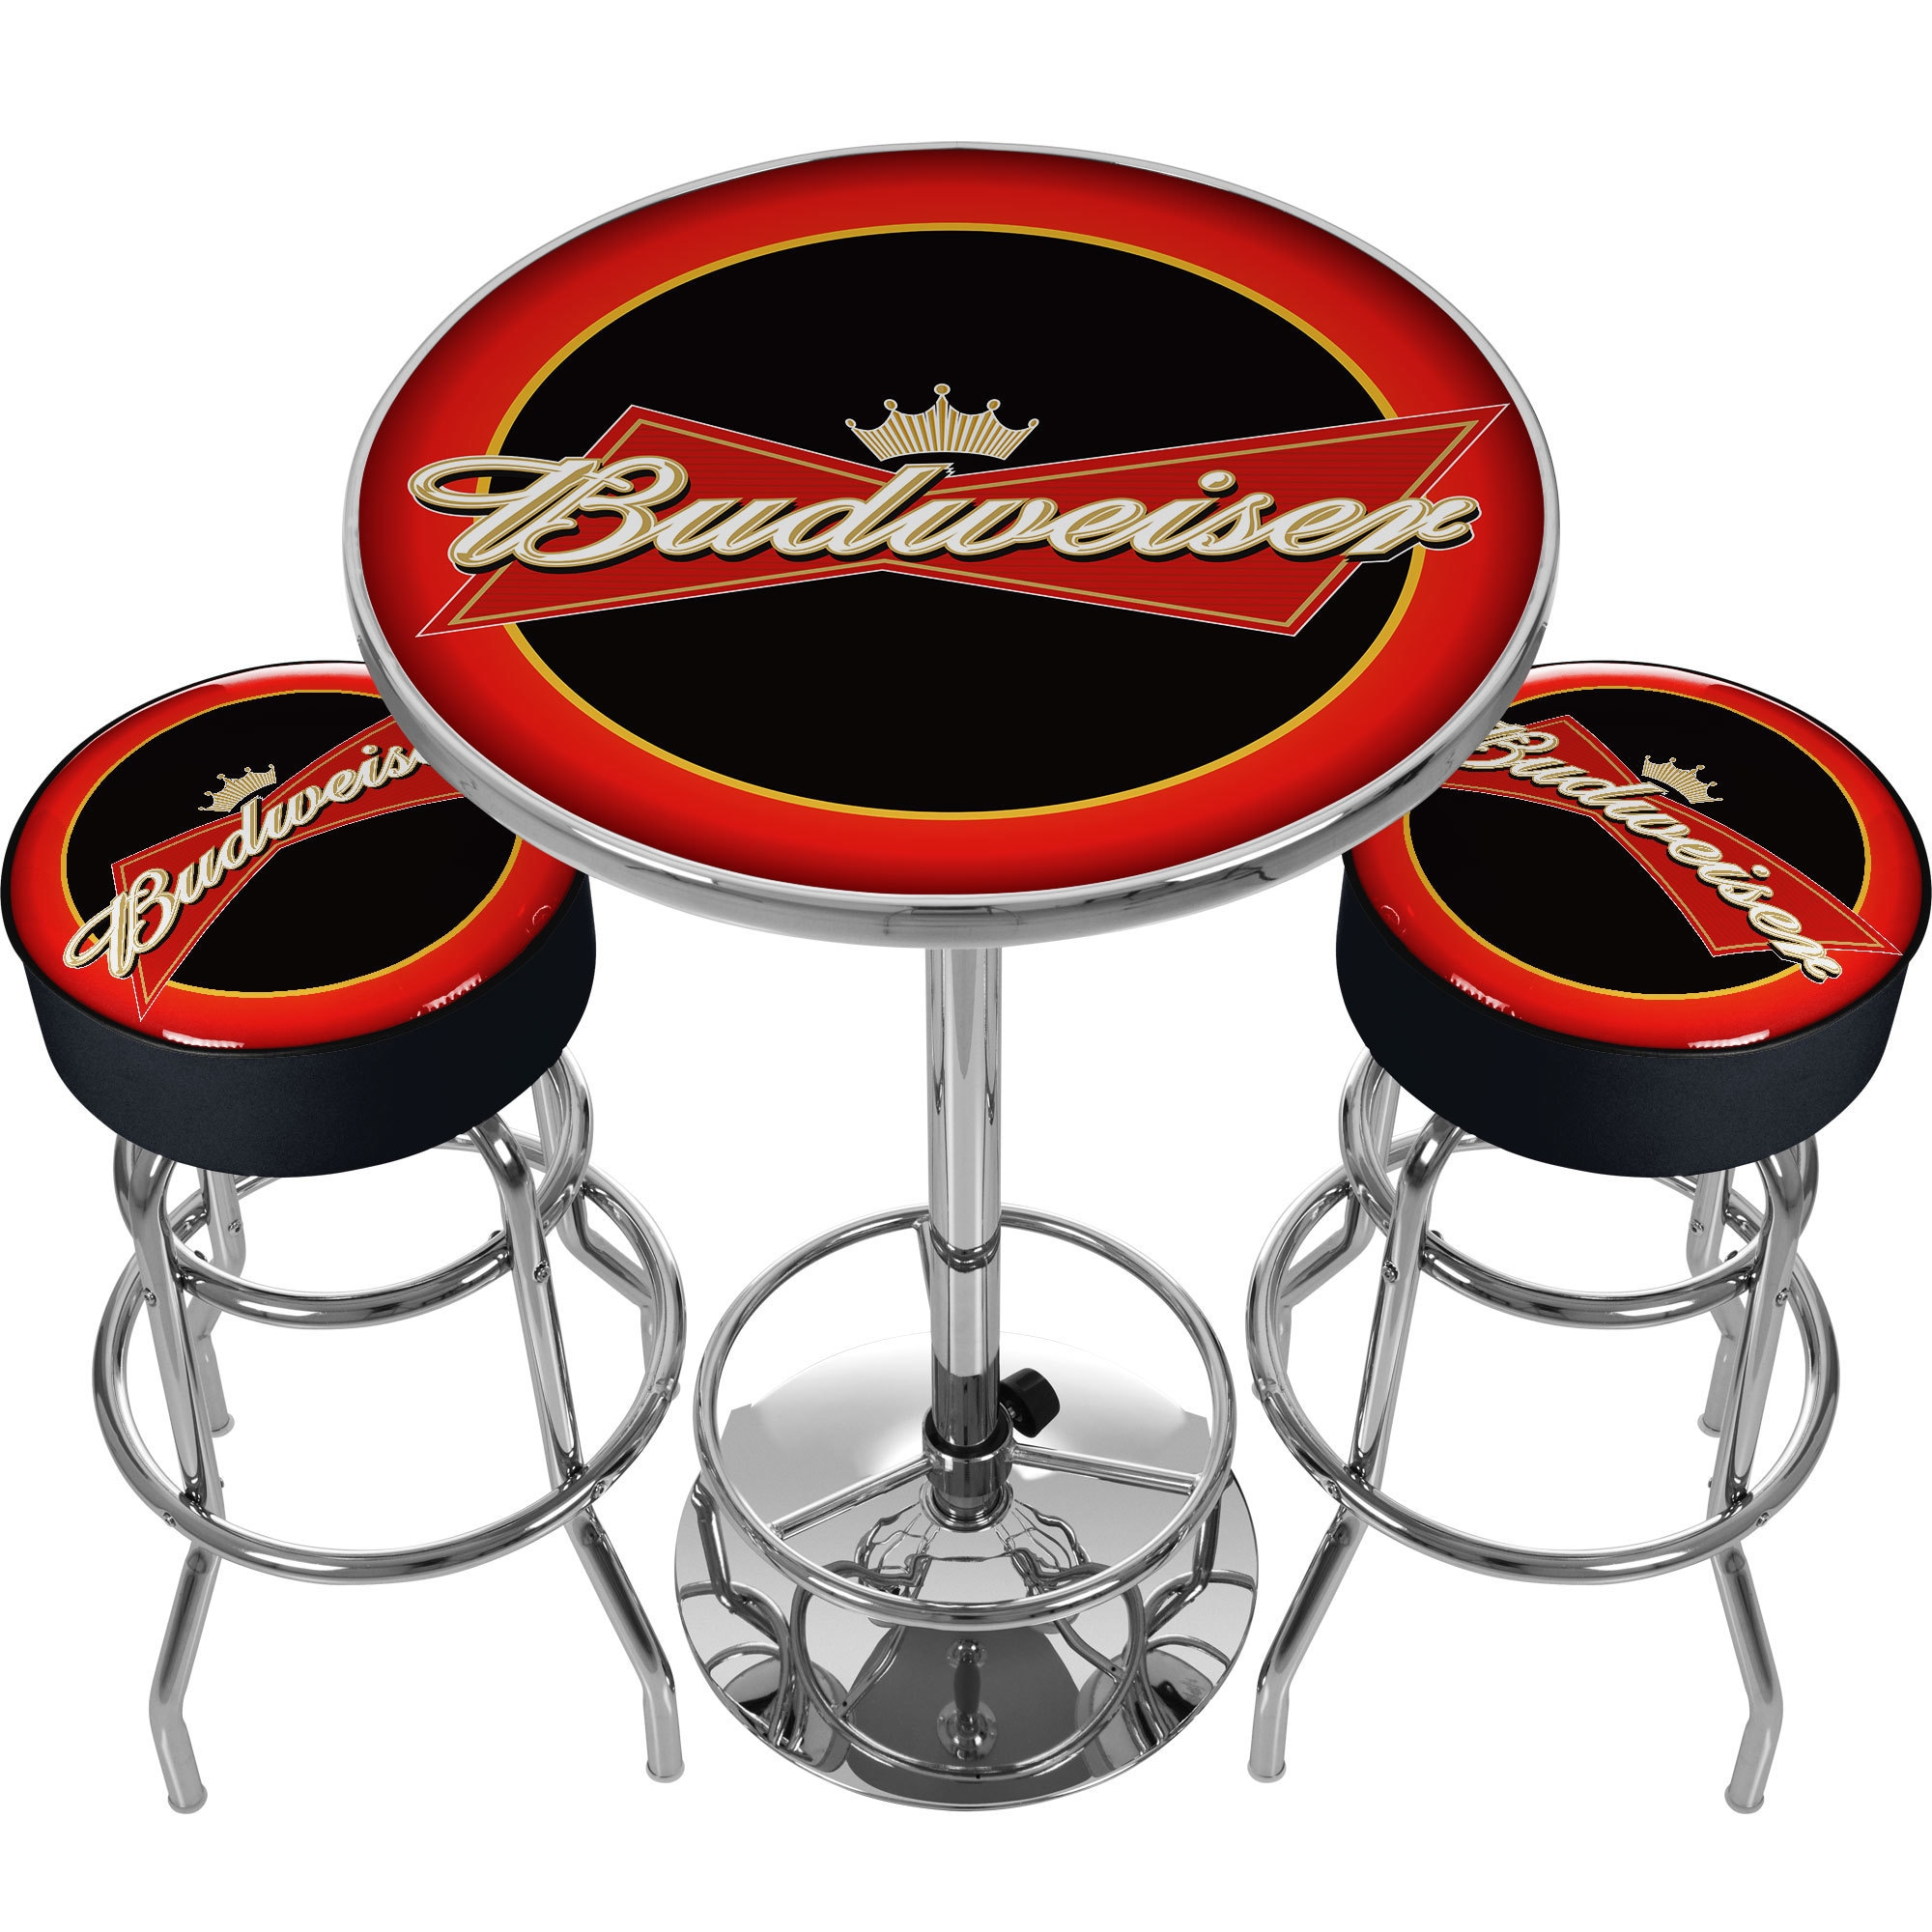 Ultimate Budweiser Gameroom Combo - 2 Bar Stools and Tabl...